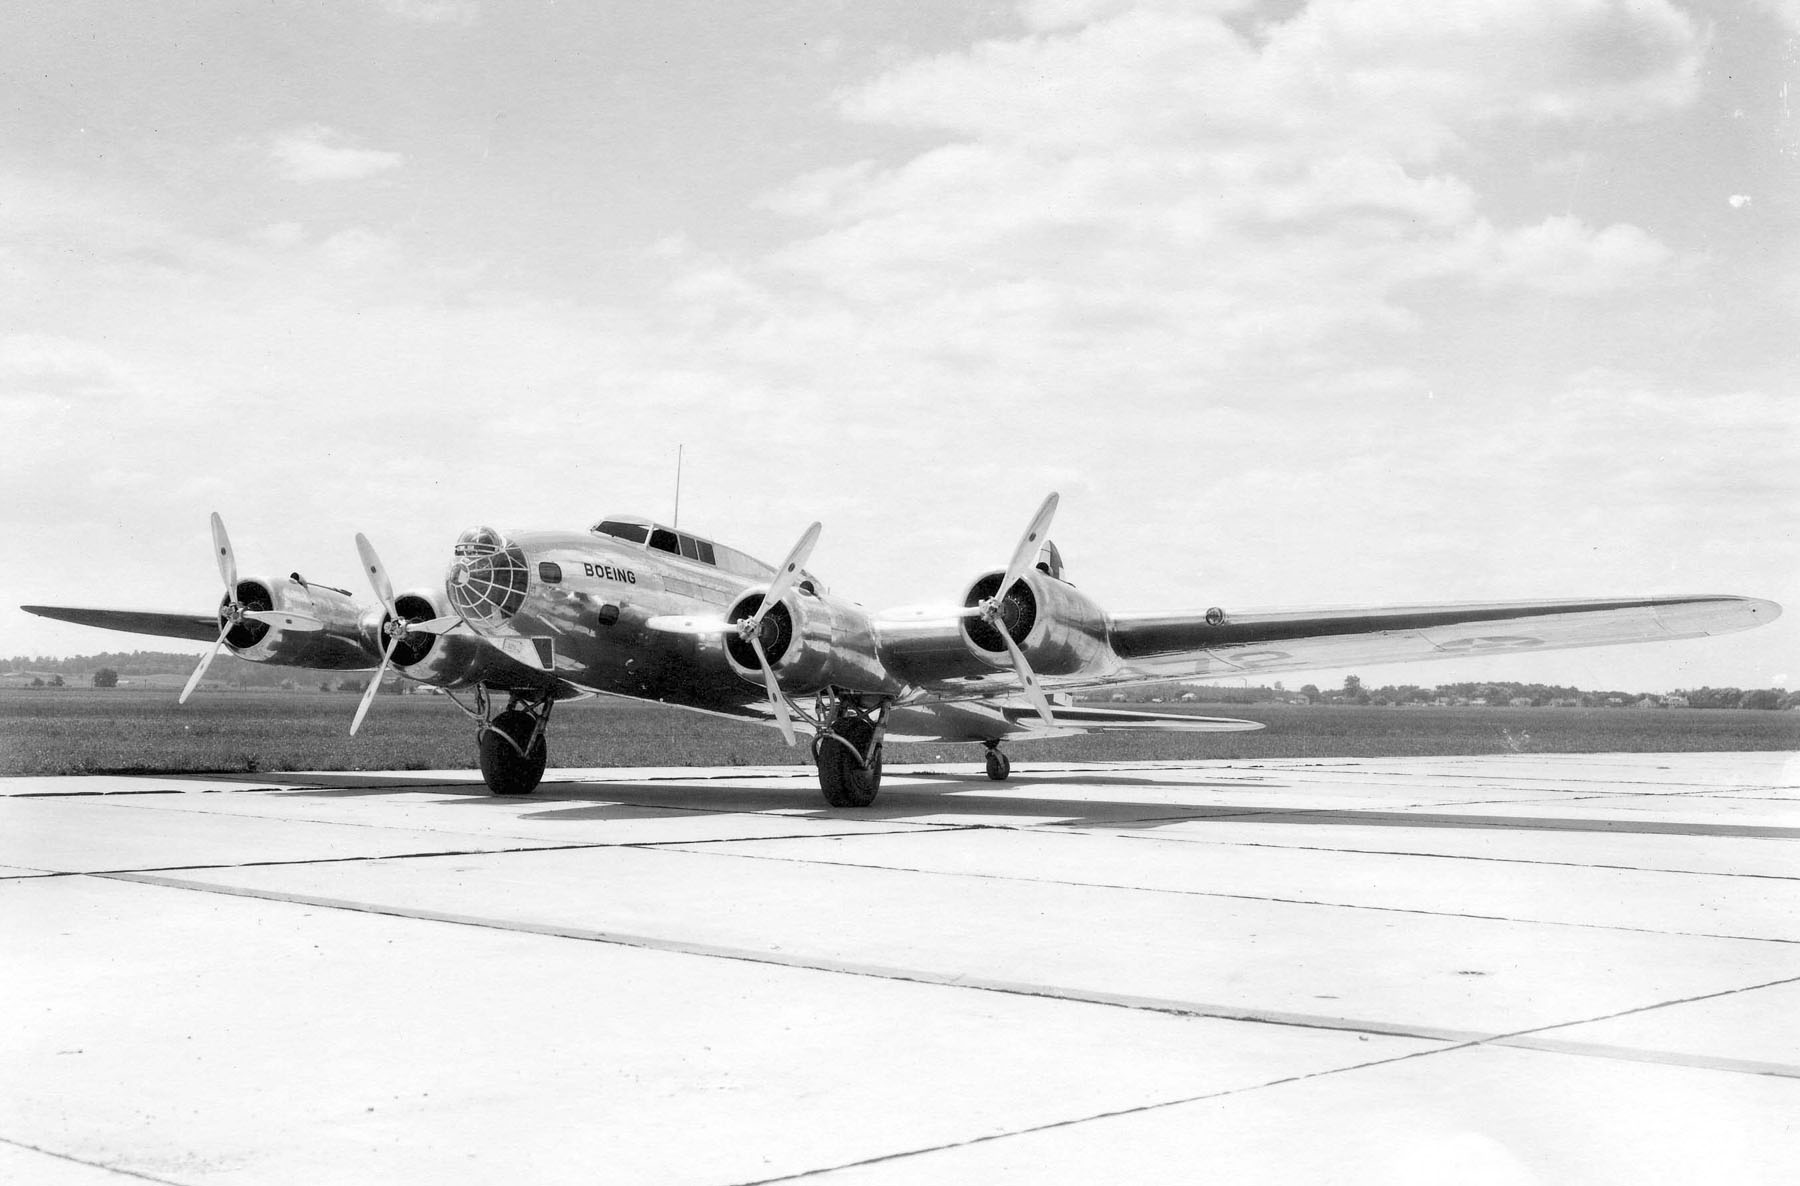 List Of Boeing B-17 Flying Fortress Variants